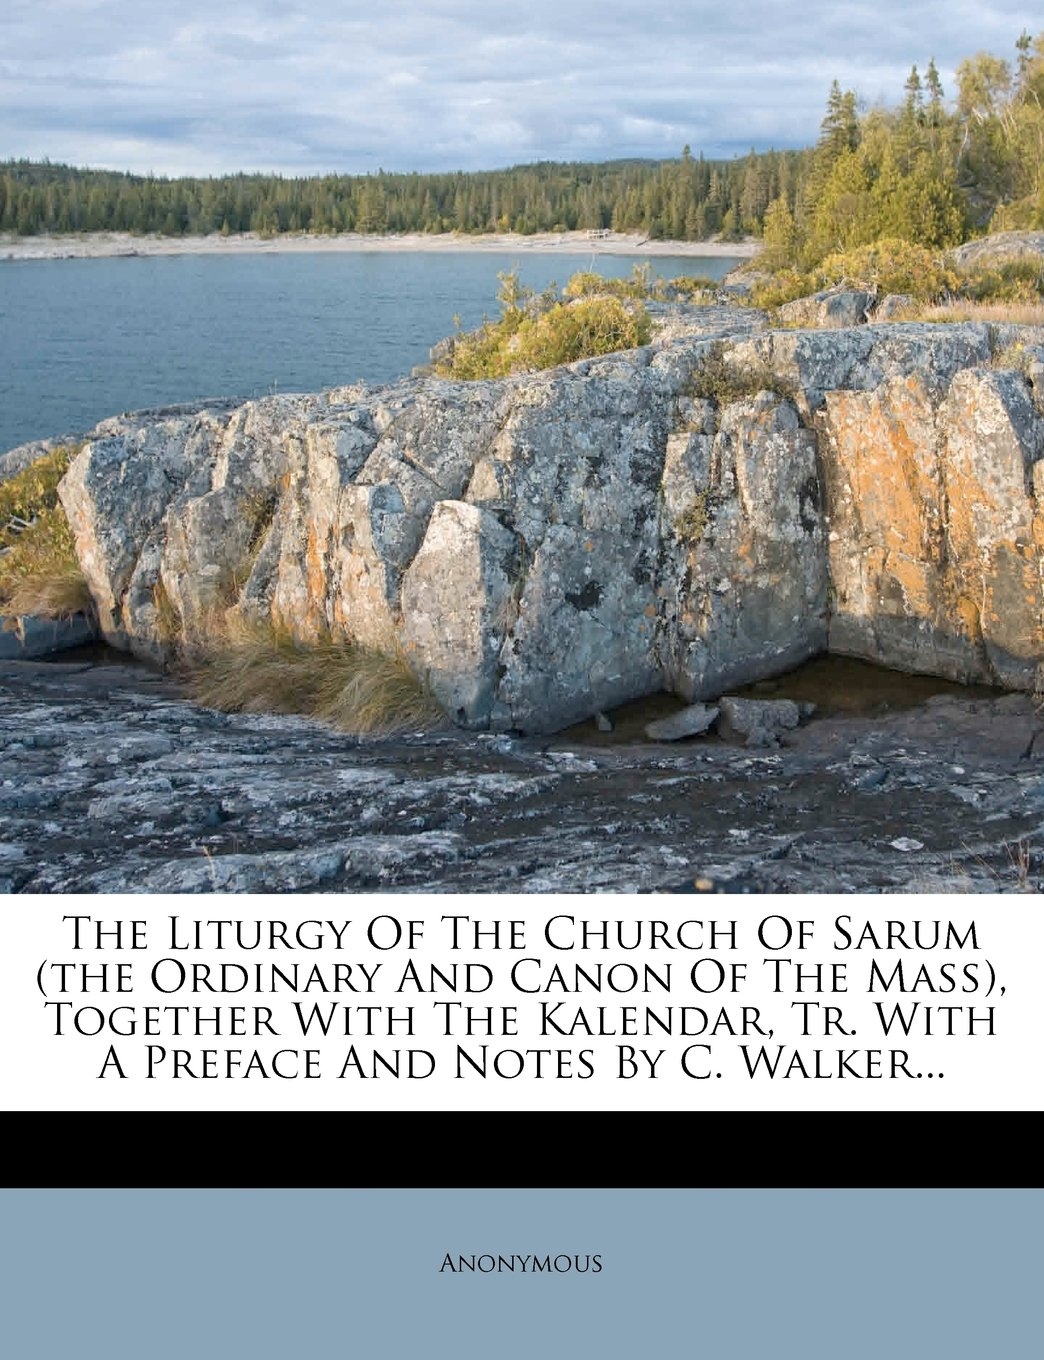 The Liturgy Of The Church Of Sarum (the Ordinary And Canon Of The Mass), Together With The Kalendar, Tr. With A Preface And Notes By C. Walker... PDF